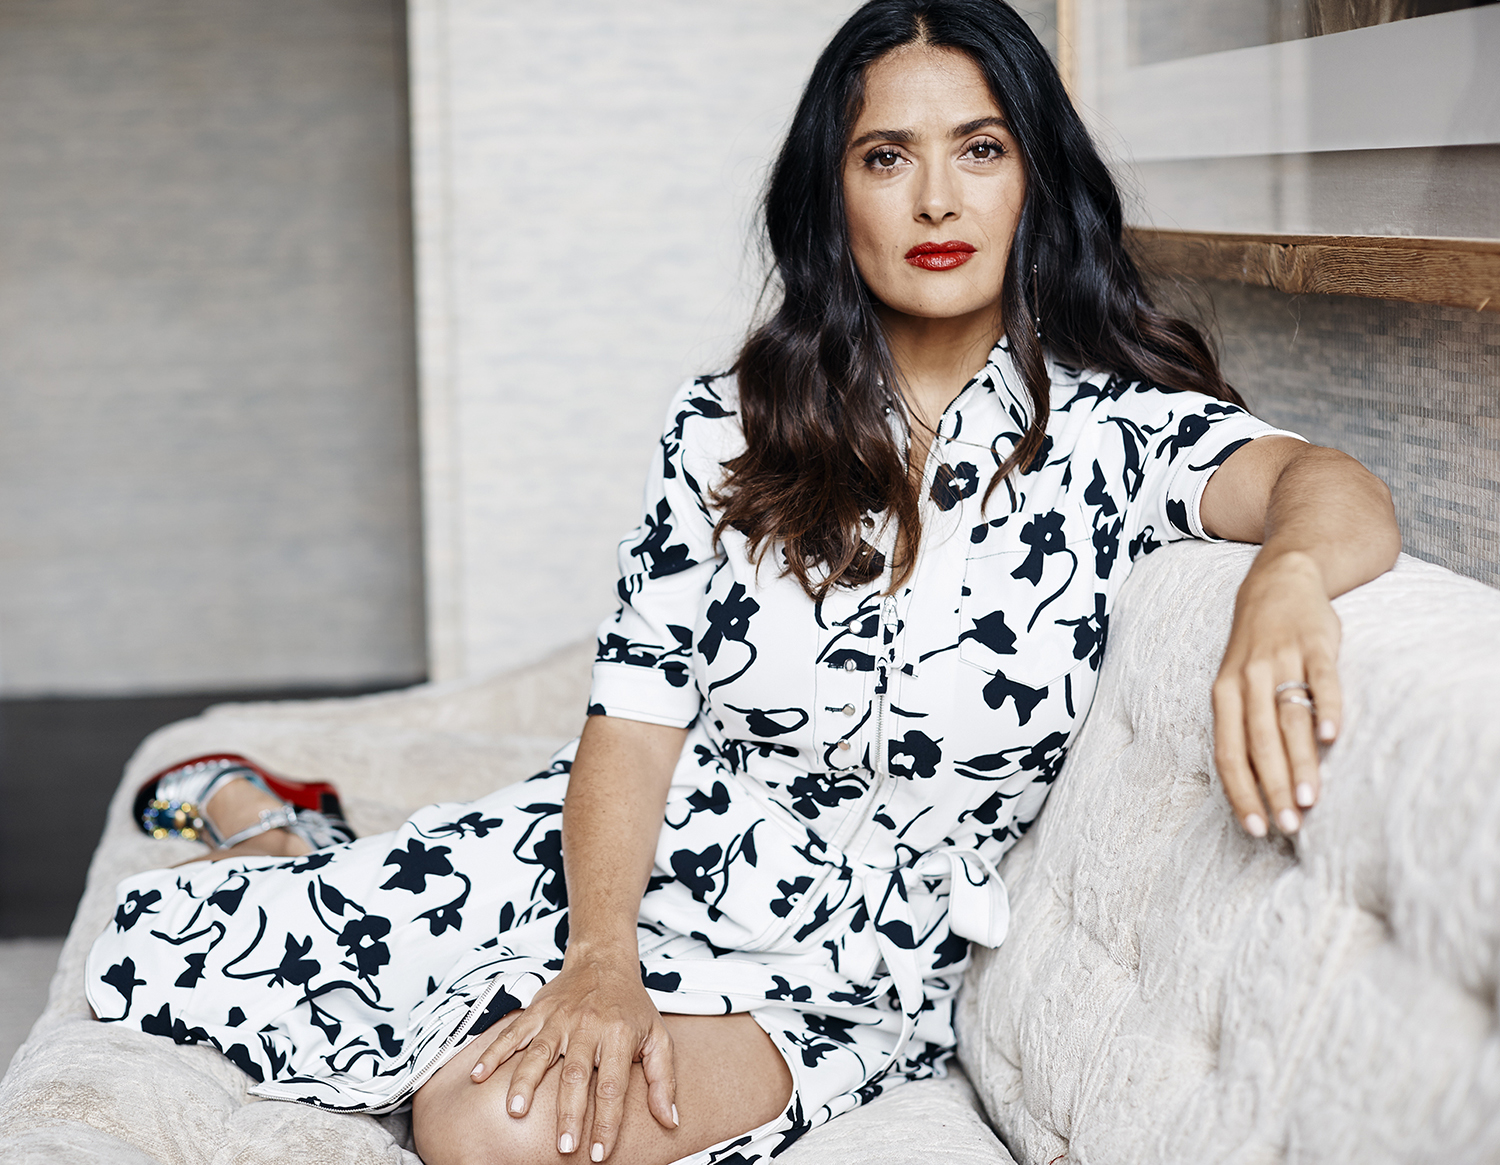 Salma_Hayek_by_Weston_Wells_2.jpg